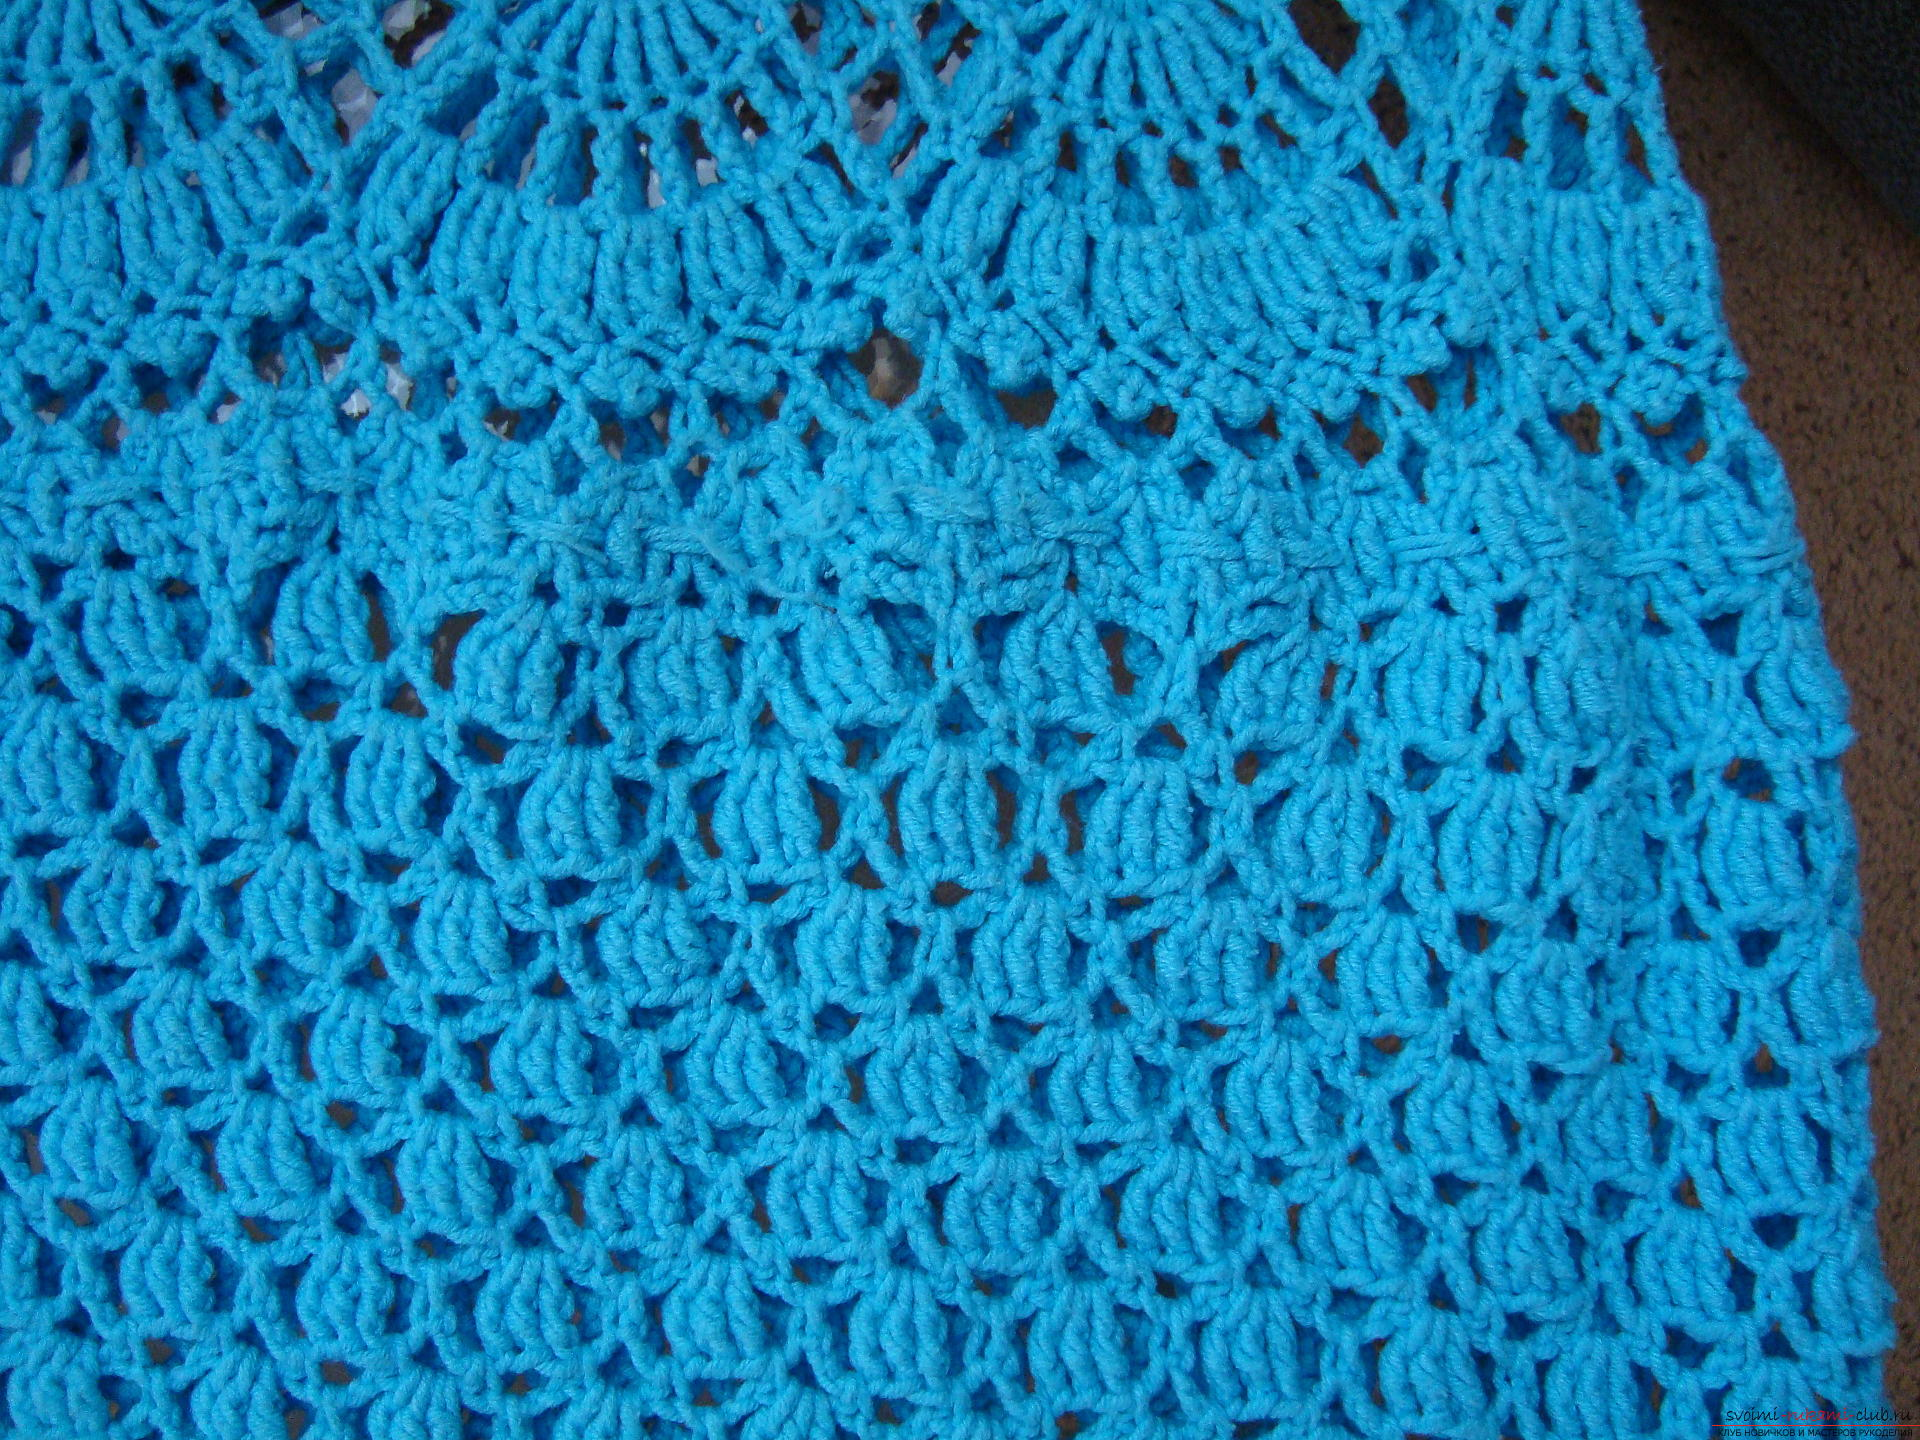 Step-by-step instruction on the binding of a turquoise dress with a crochet. Photo number 12